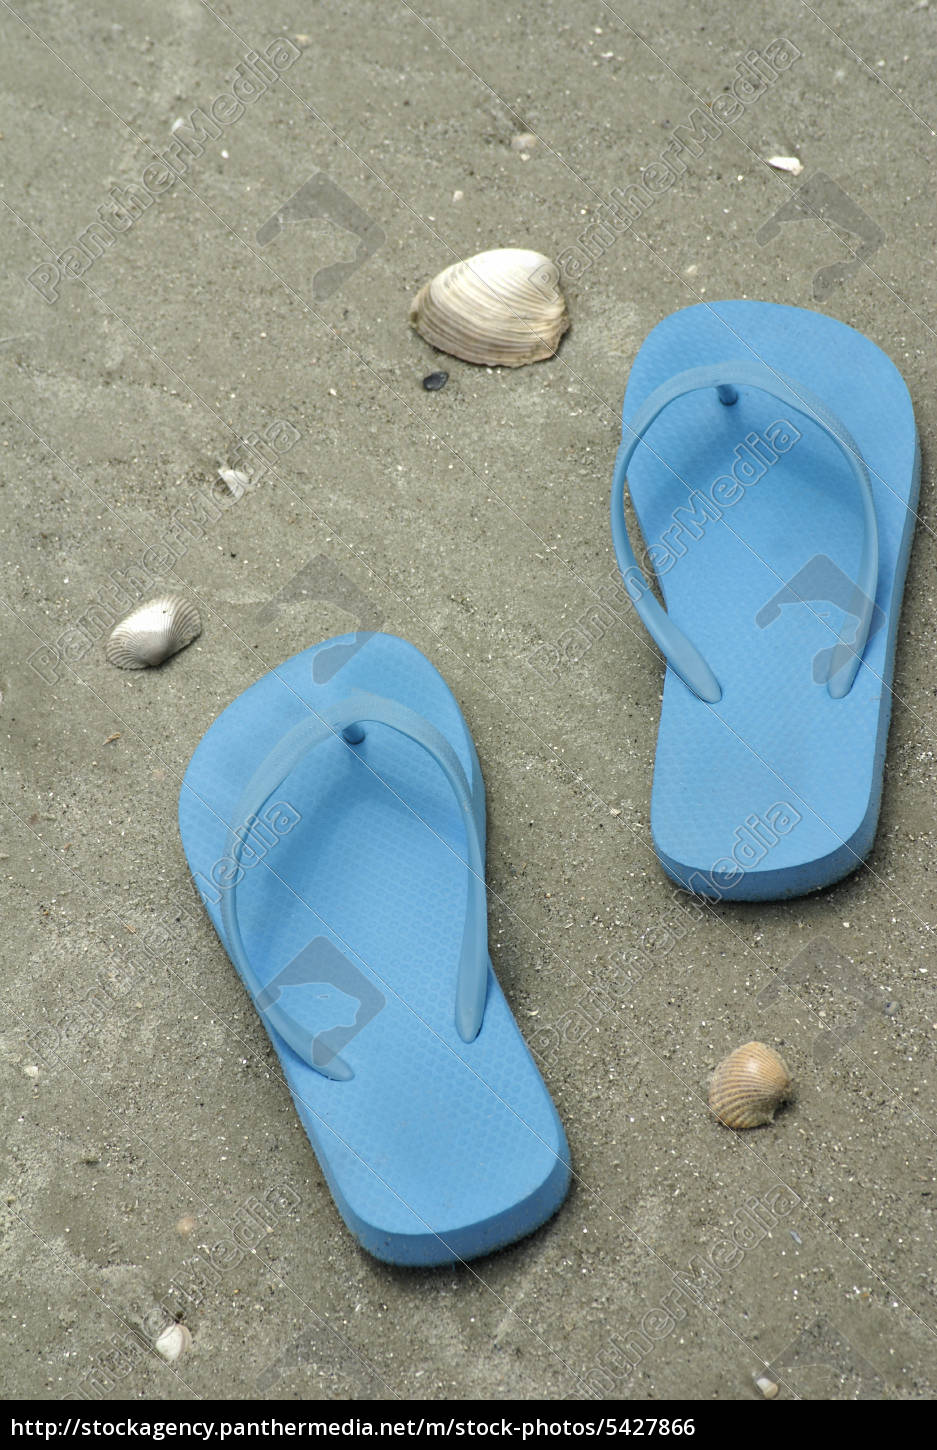 14bac751d1ac75 Blue flip flops on beach - Stock image -  5427866 - PantherMedia ...